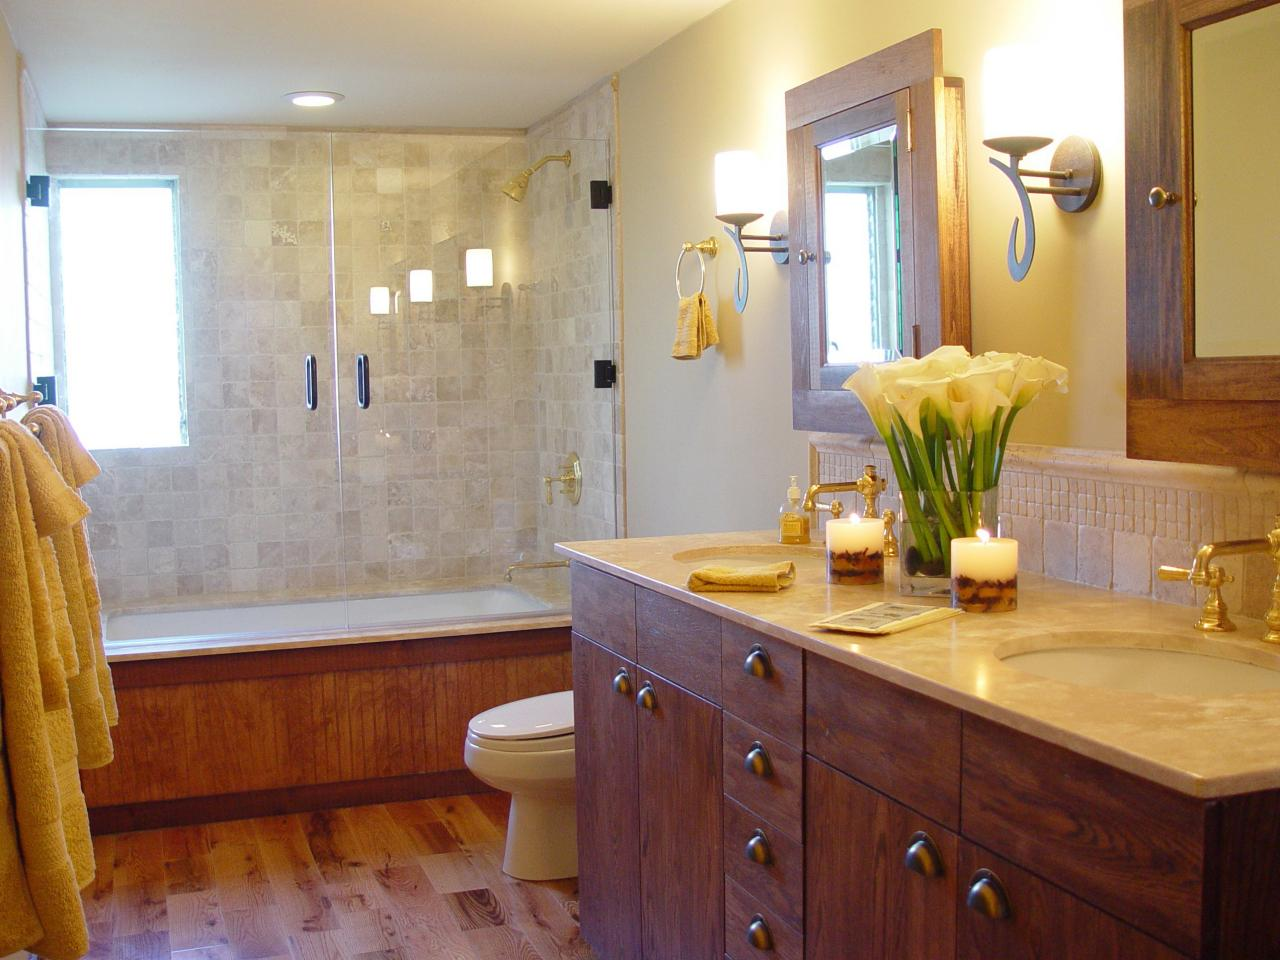 Full bathrooms bathroom design choose floor plan for Small full bathroom designs